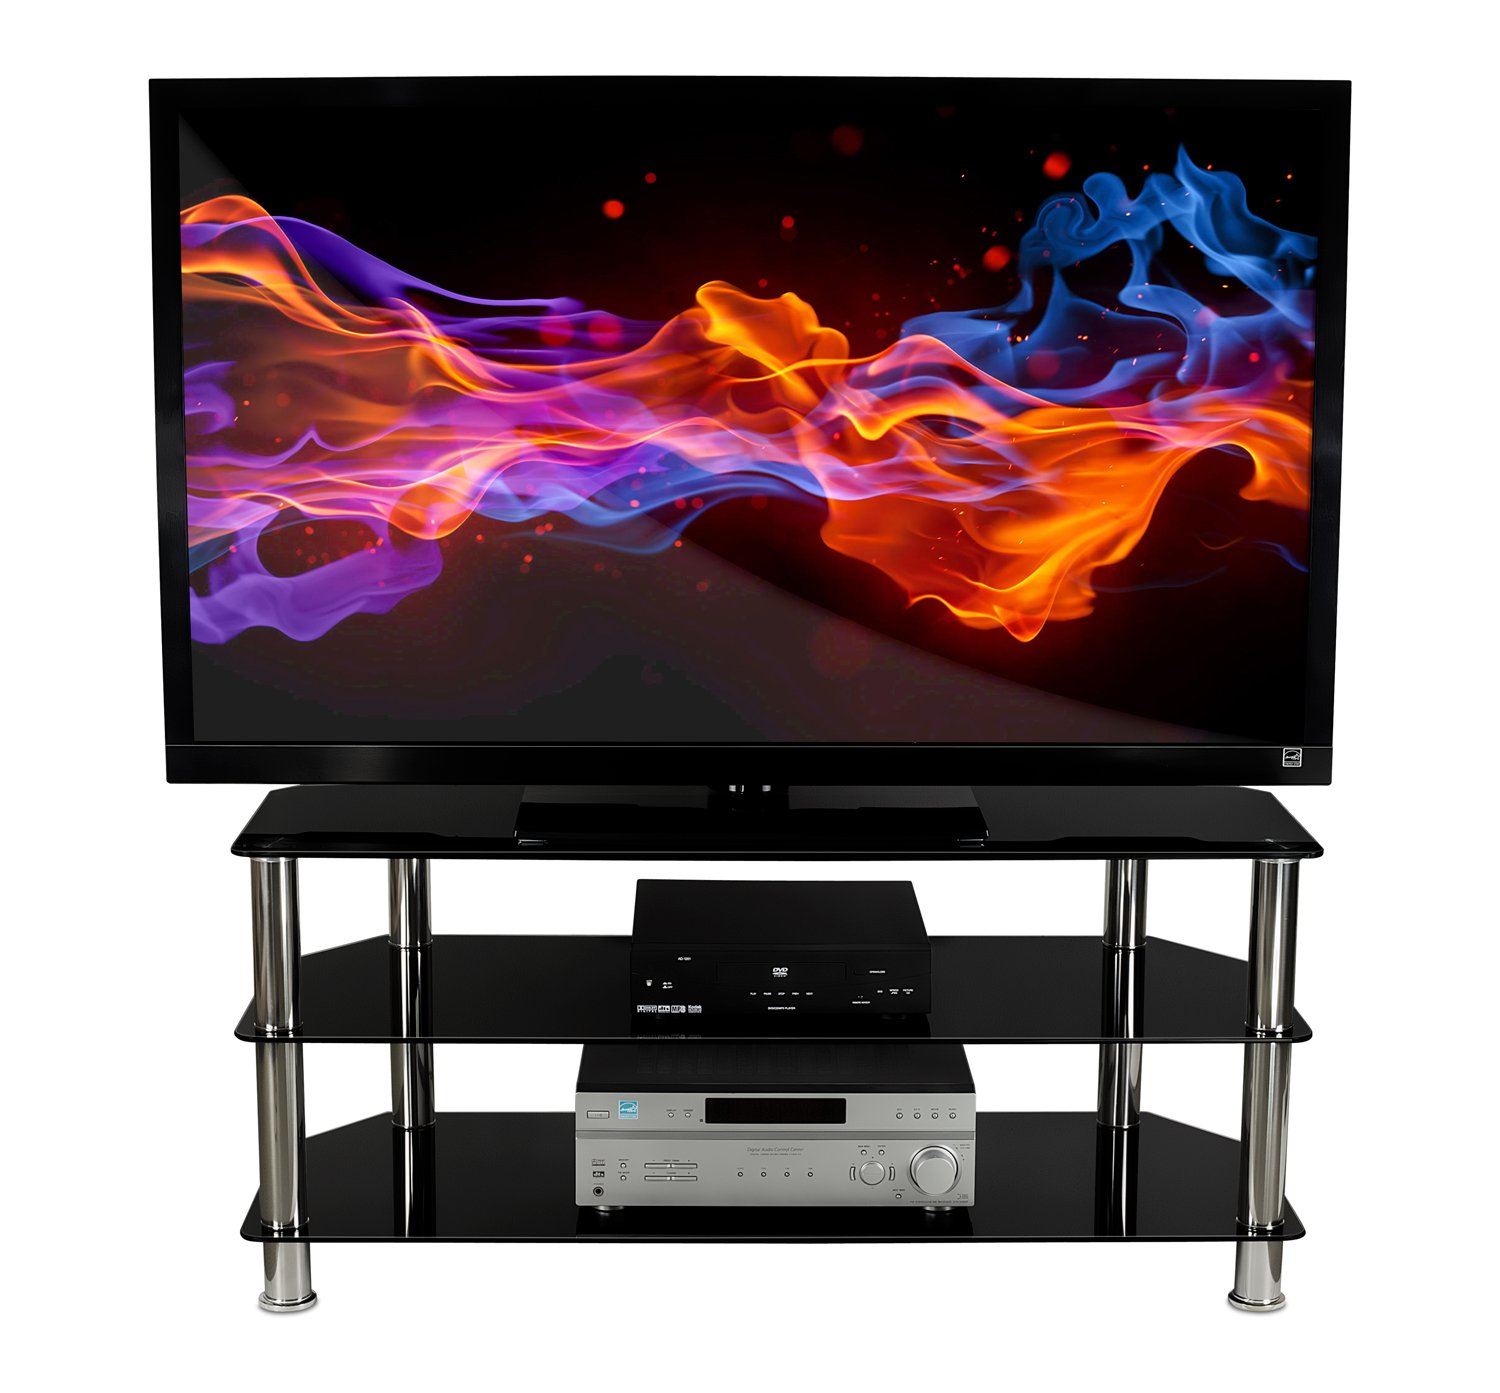 Amazoncom Mount It Glass Tv Stand For Flat Screen Televisions Fits